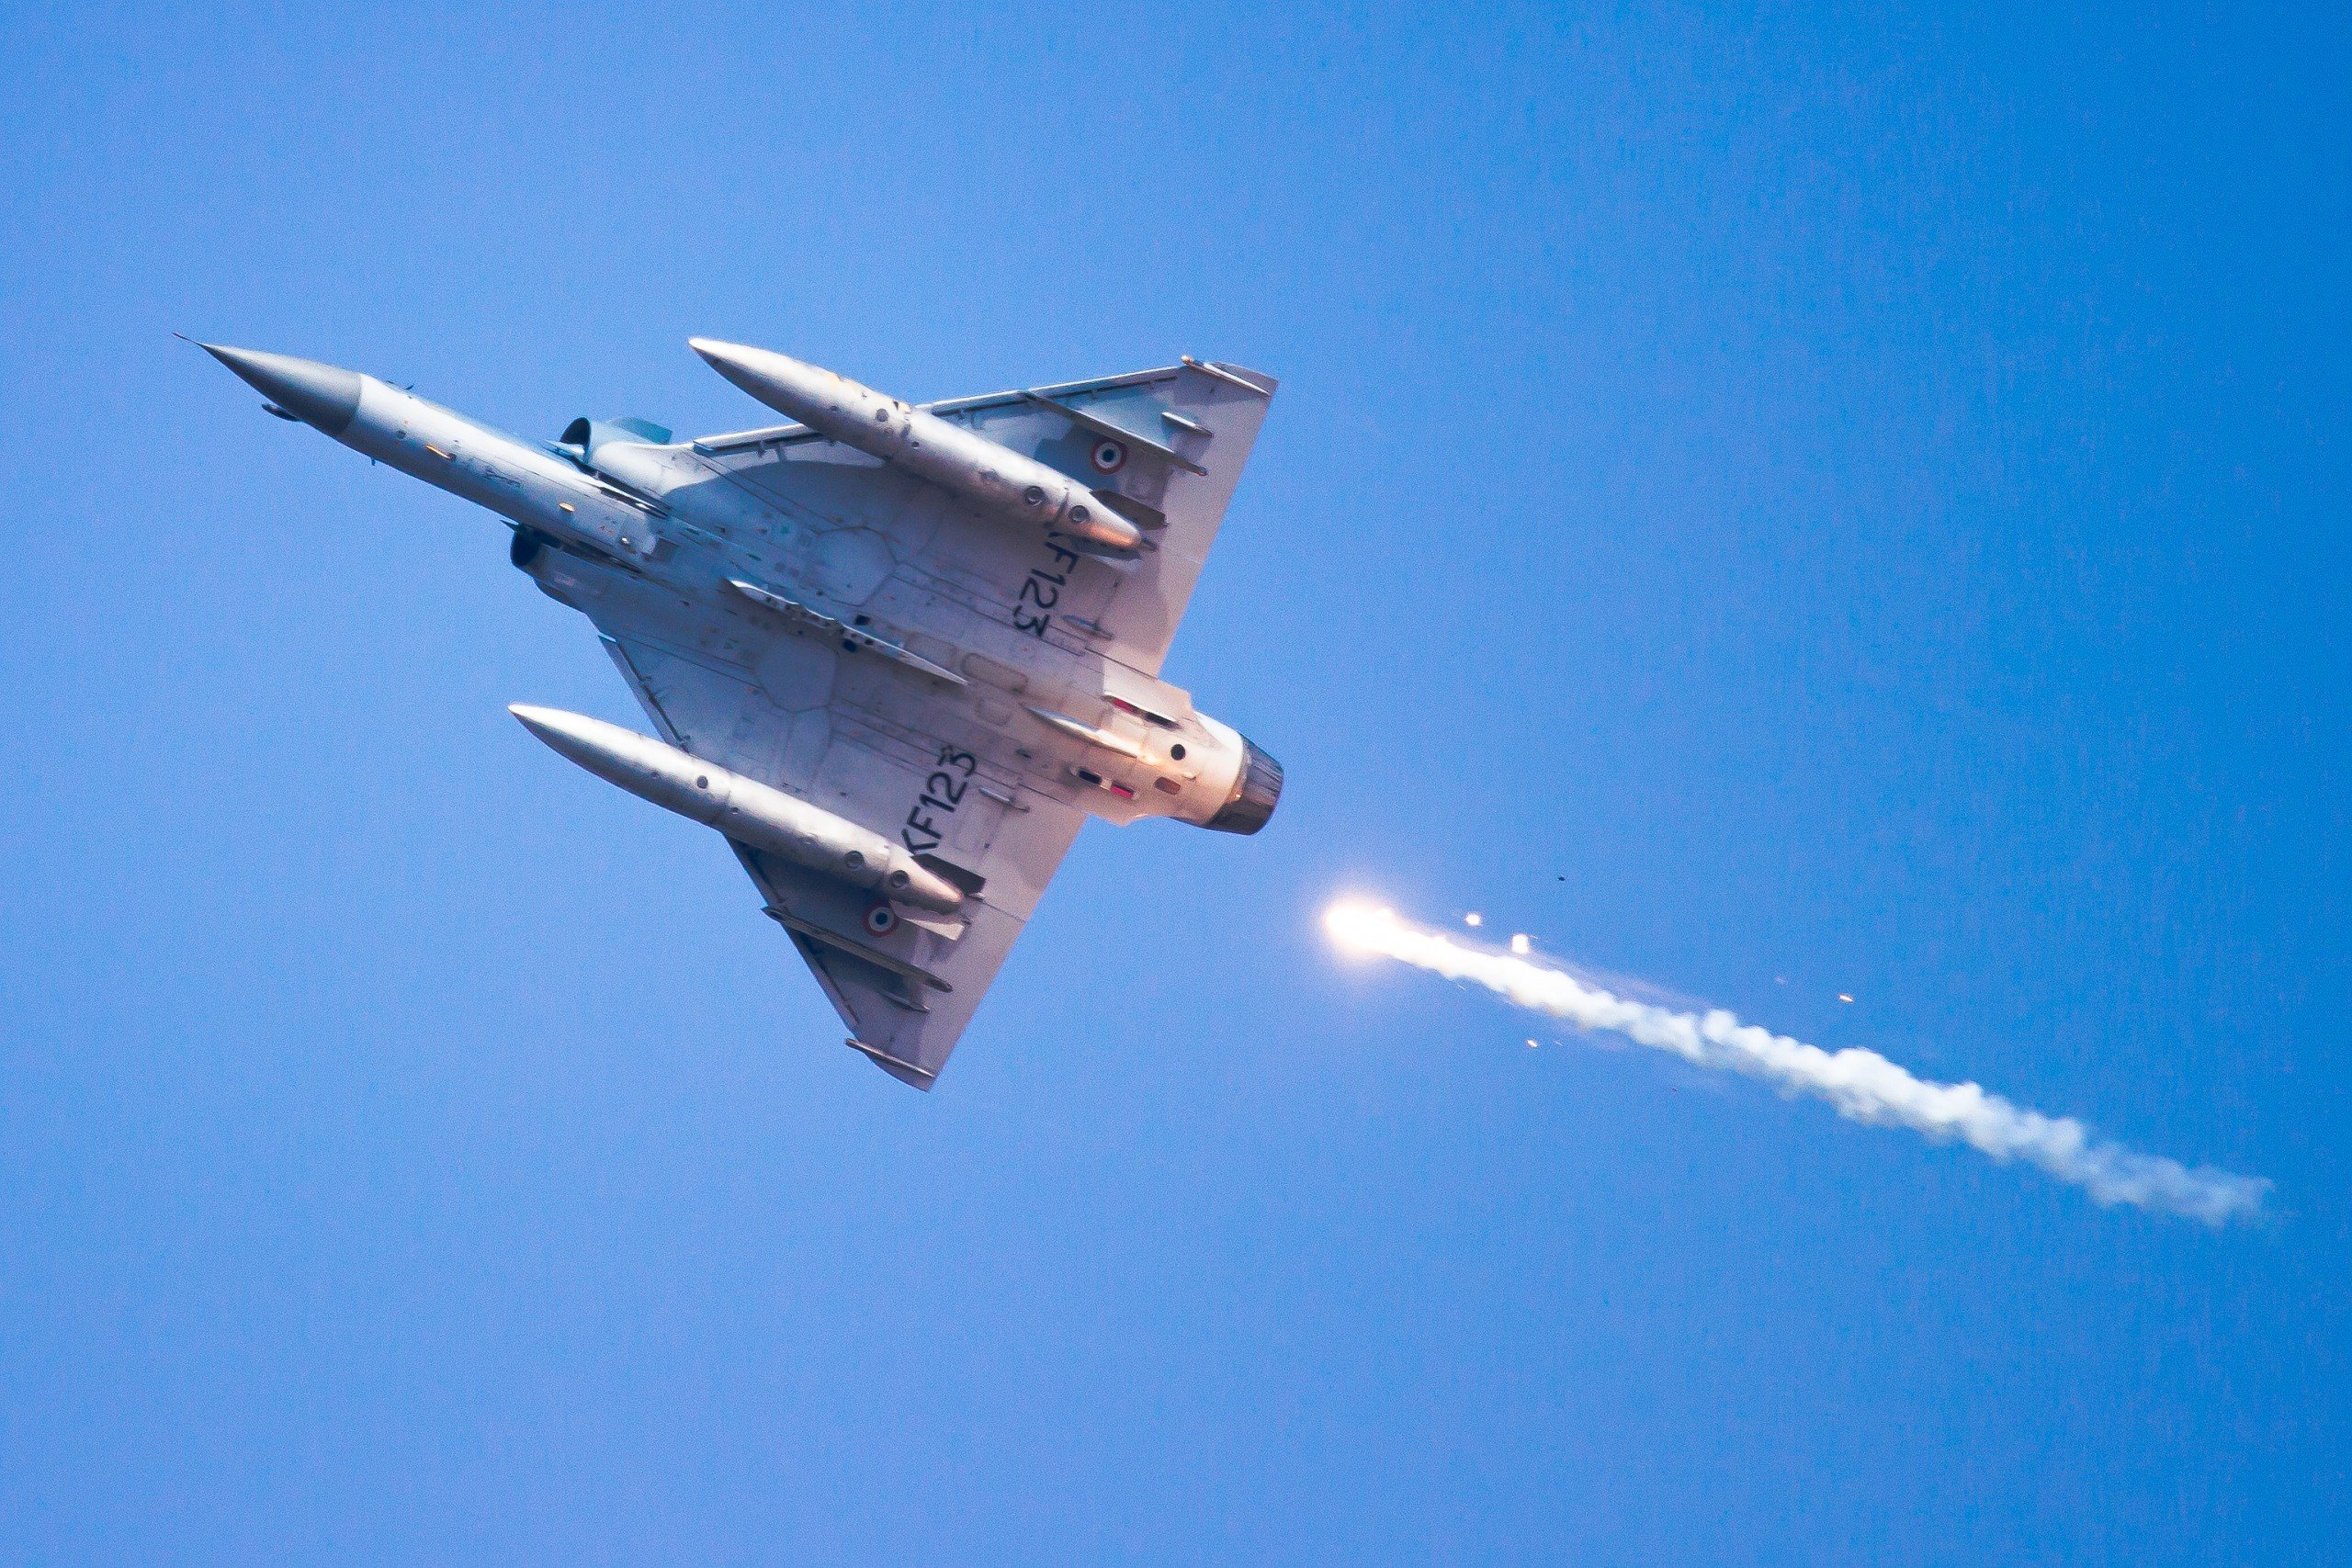 A fighter jet of Indian Air Force